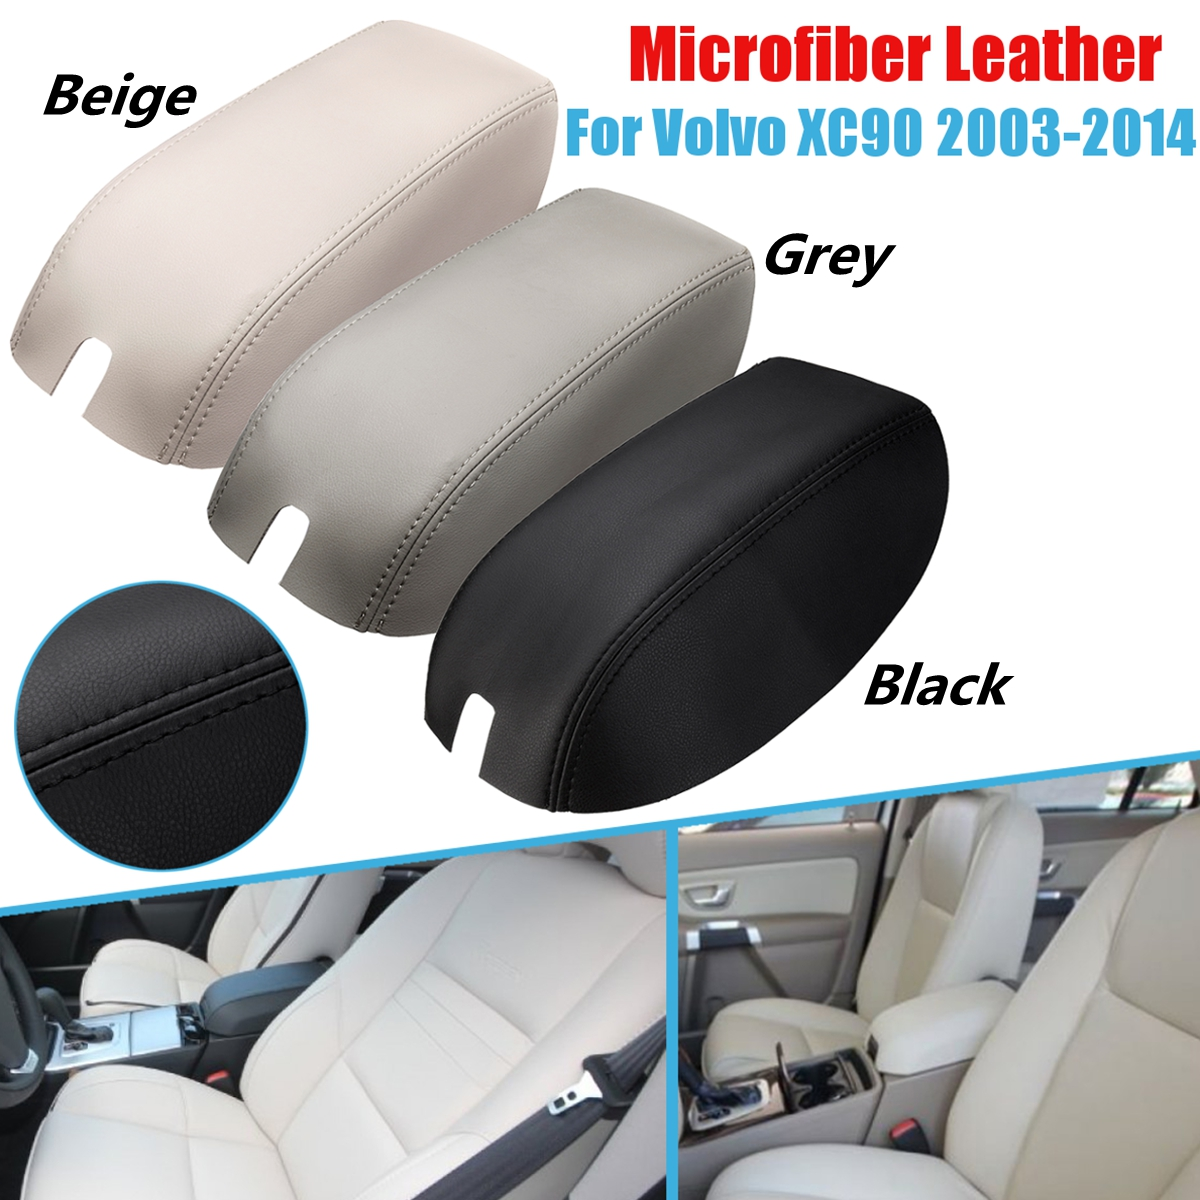 3 Colors Car Armrest Cover Leather Center Console Lid for For Volvo <font><b>XC90</b></font> <font><b>2003</b></font> 2004 2005 2006 2007 2008 2009 2010 2011-2014 image